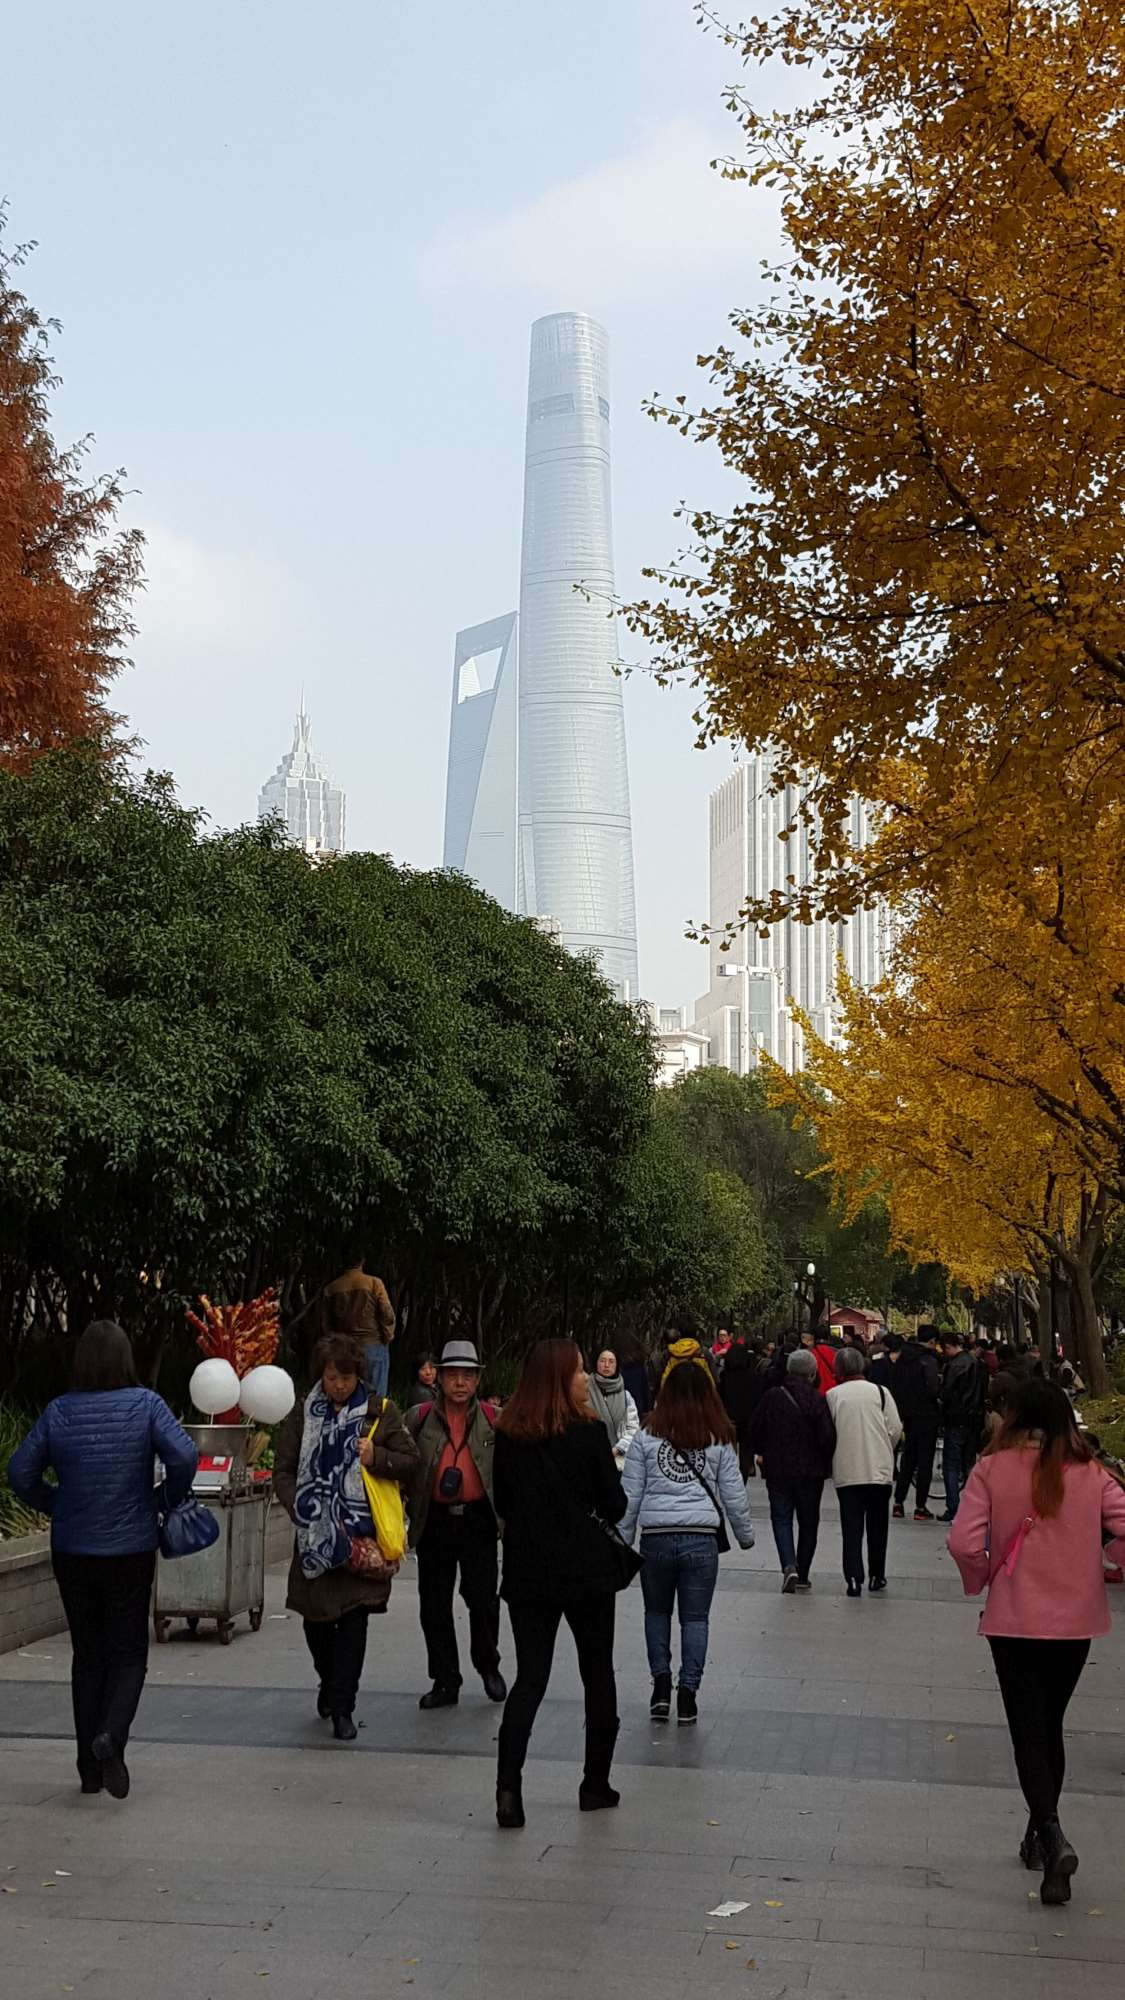 Things to do in Shanghai City Guide Shanghai Tower Shanghai World Financial Center Jin Mao Tower2